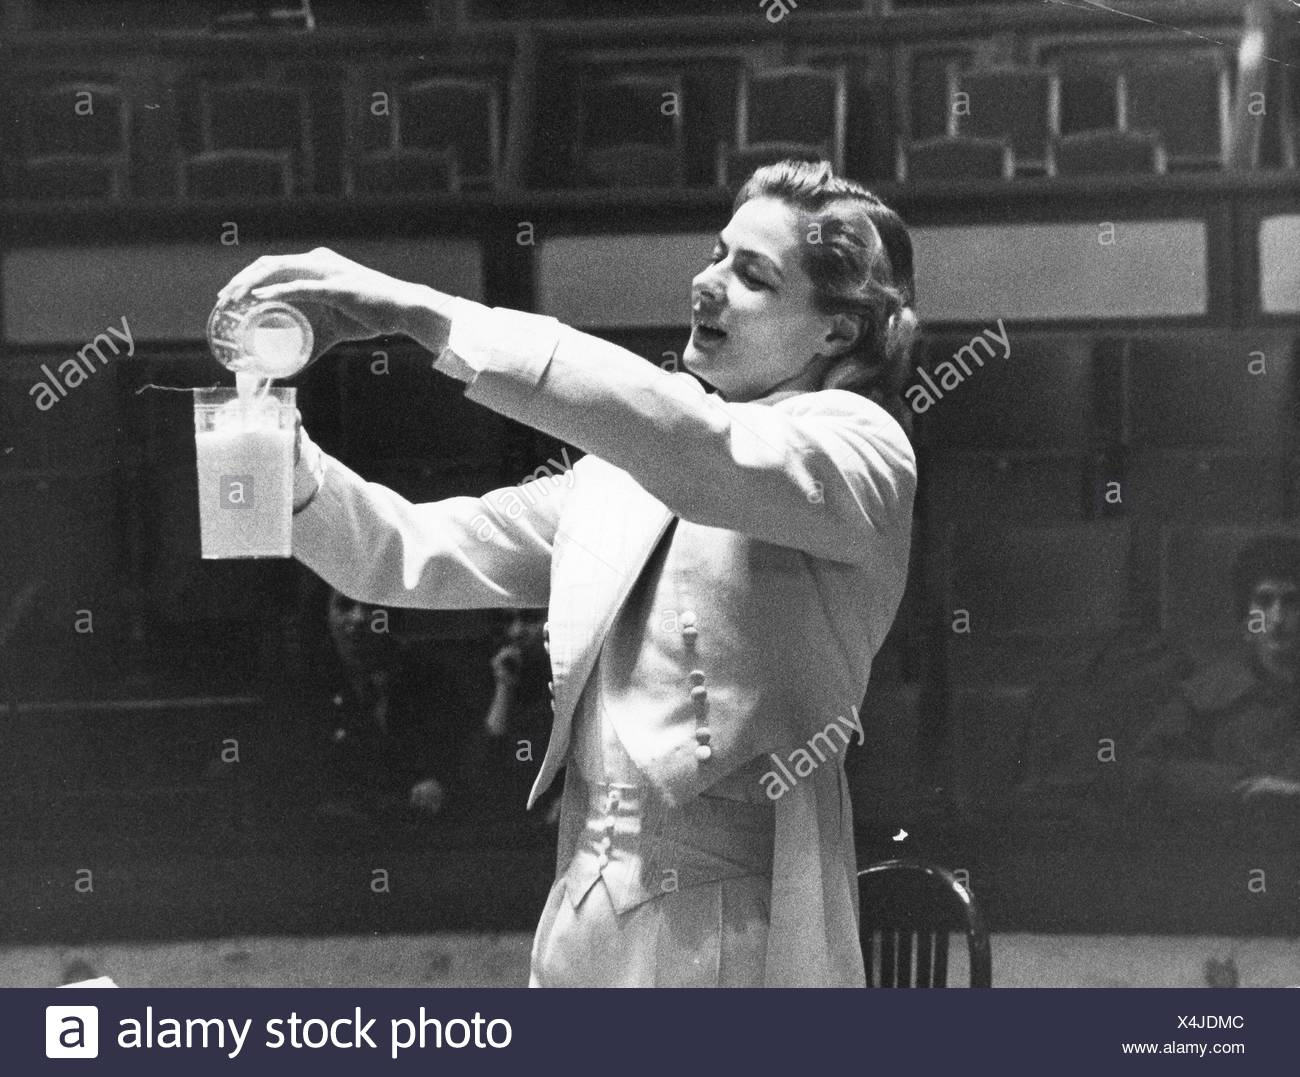 Bergman, Ingrid, 29.8.1915 - 29.8.1982, Swedish actress, half length, during rehearsal for gala of the Union des Artistes, Cirque d'hiver, Paris, 4.3.1957, Additional-Rights-Clearances-NA - Stock Image